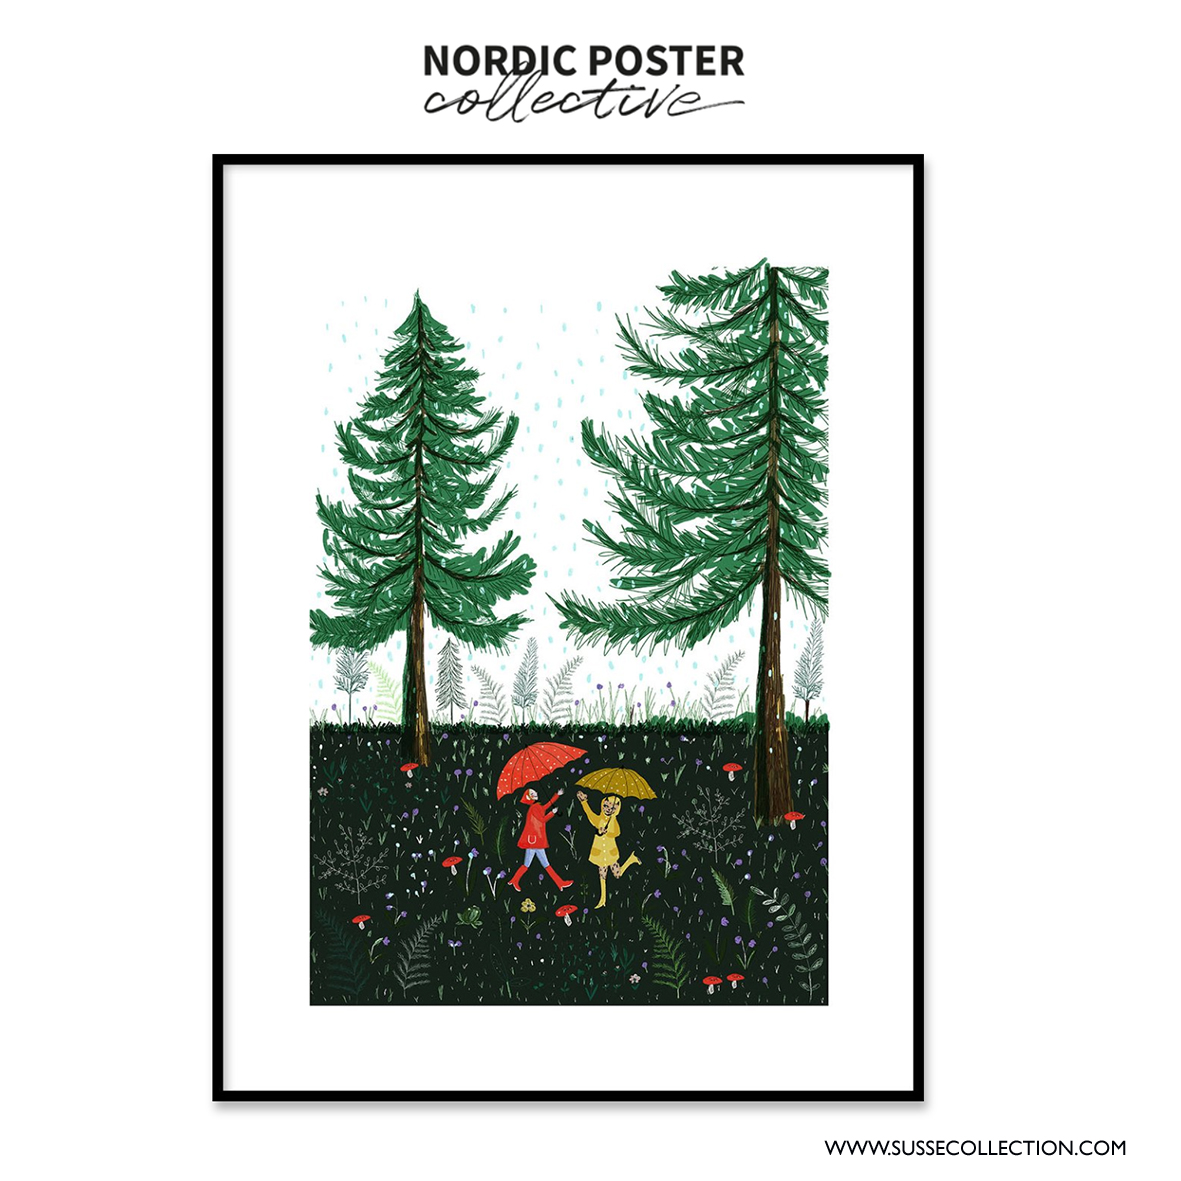 Nordic Poster Collective 3 Susse Collection 2 .jpg